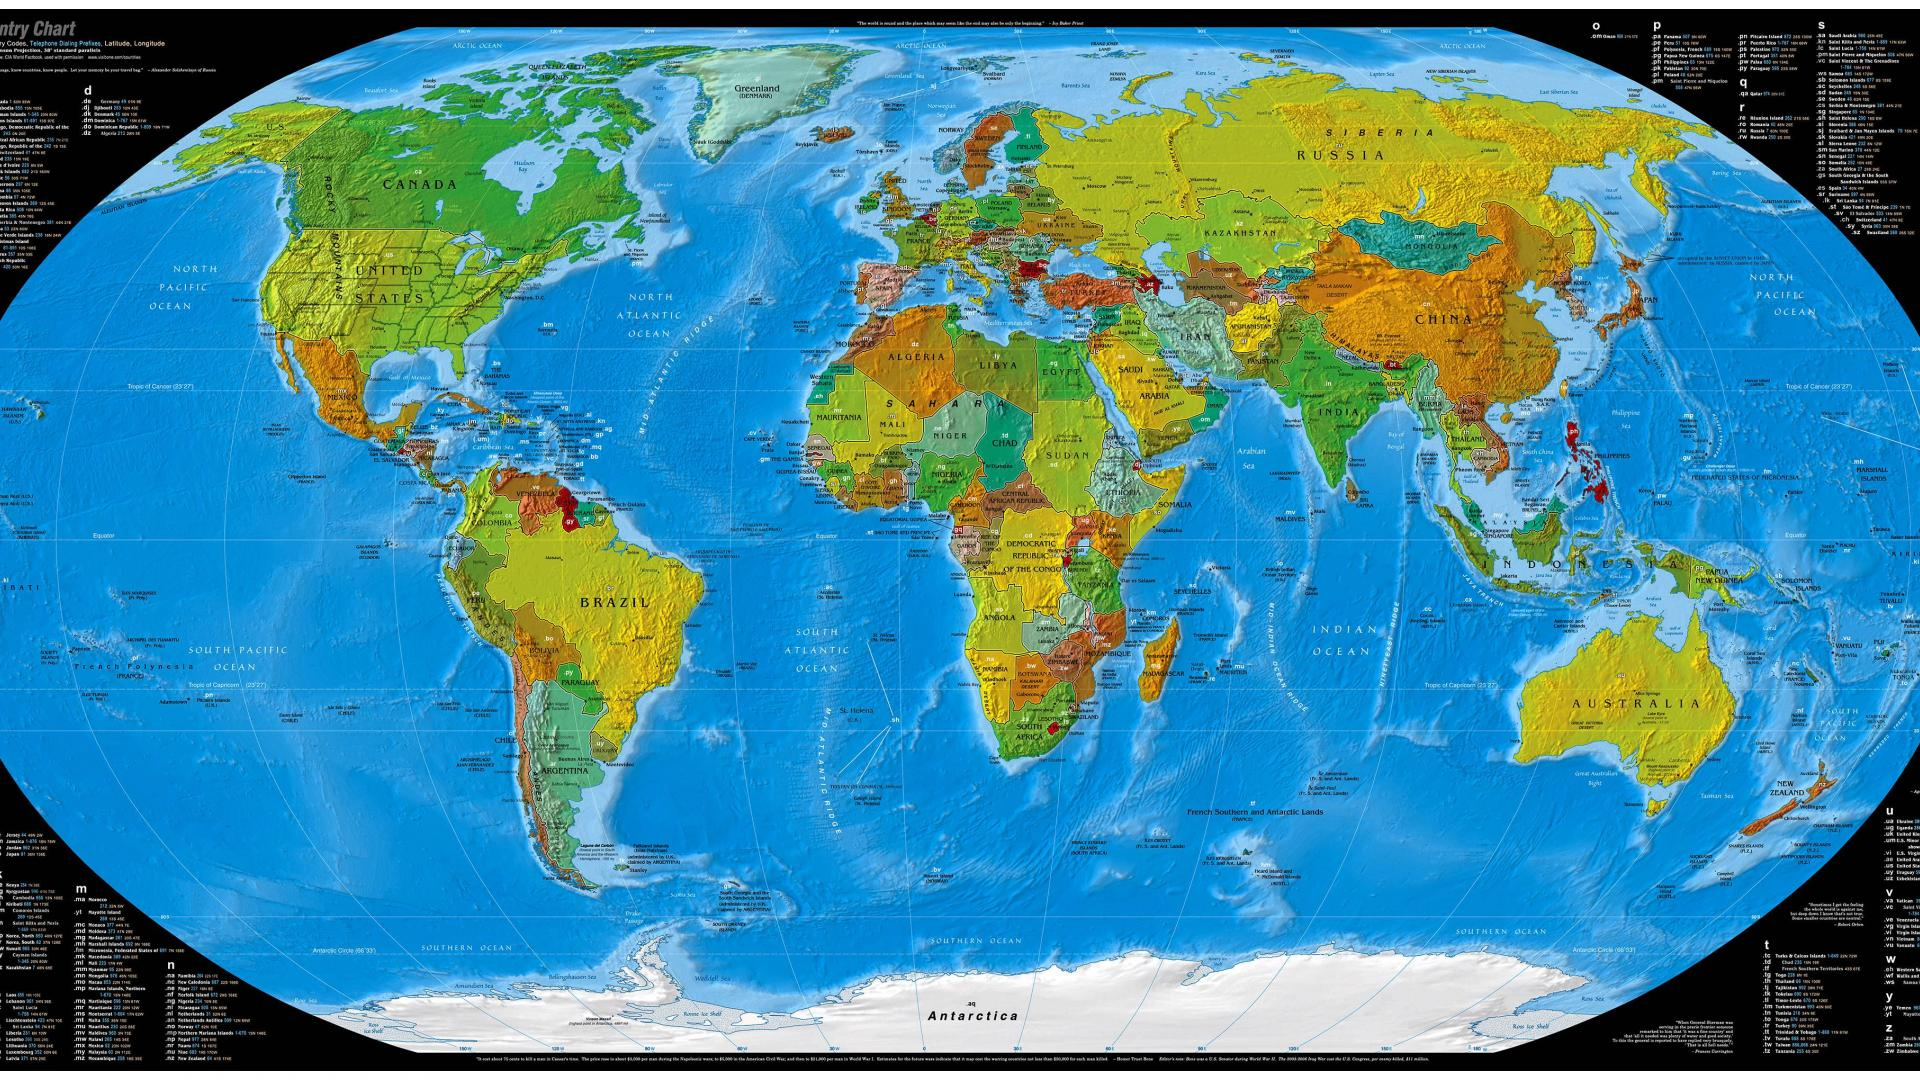 World map wallpapers wallpapersafari world map wallpaper hq wallpaper 23762 gumiabroncs Gallery